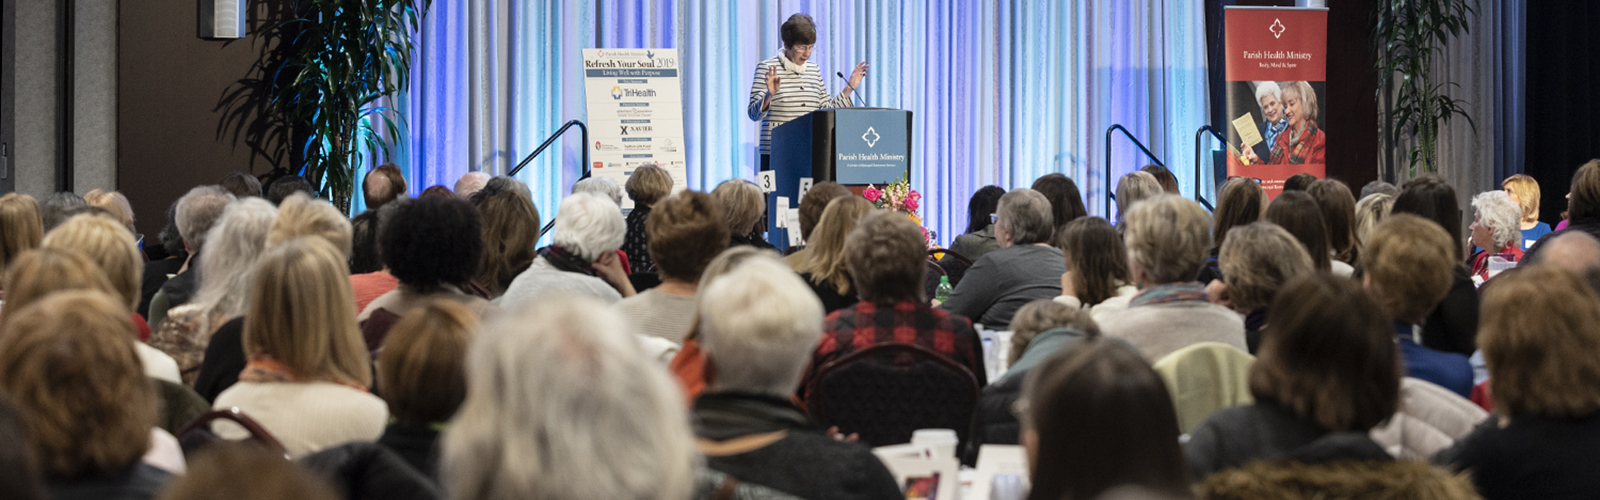 "Keynote speaker Kathryn Spink, author of ""Mother Teresa: The Complete Authorized Biography"" <span class=&apos;image-credits&apos;>Gary Kessler</span>"